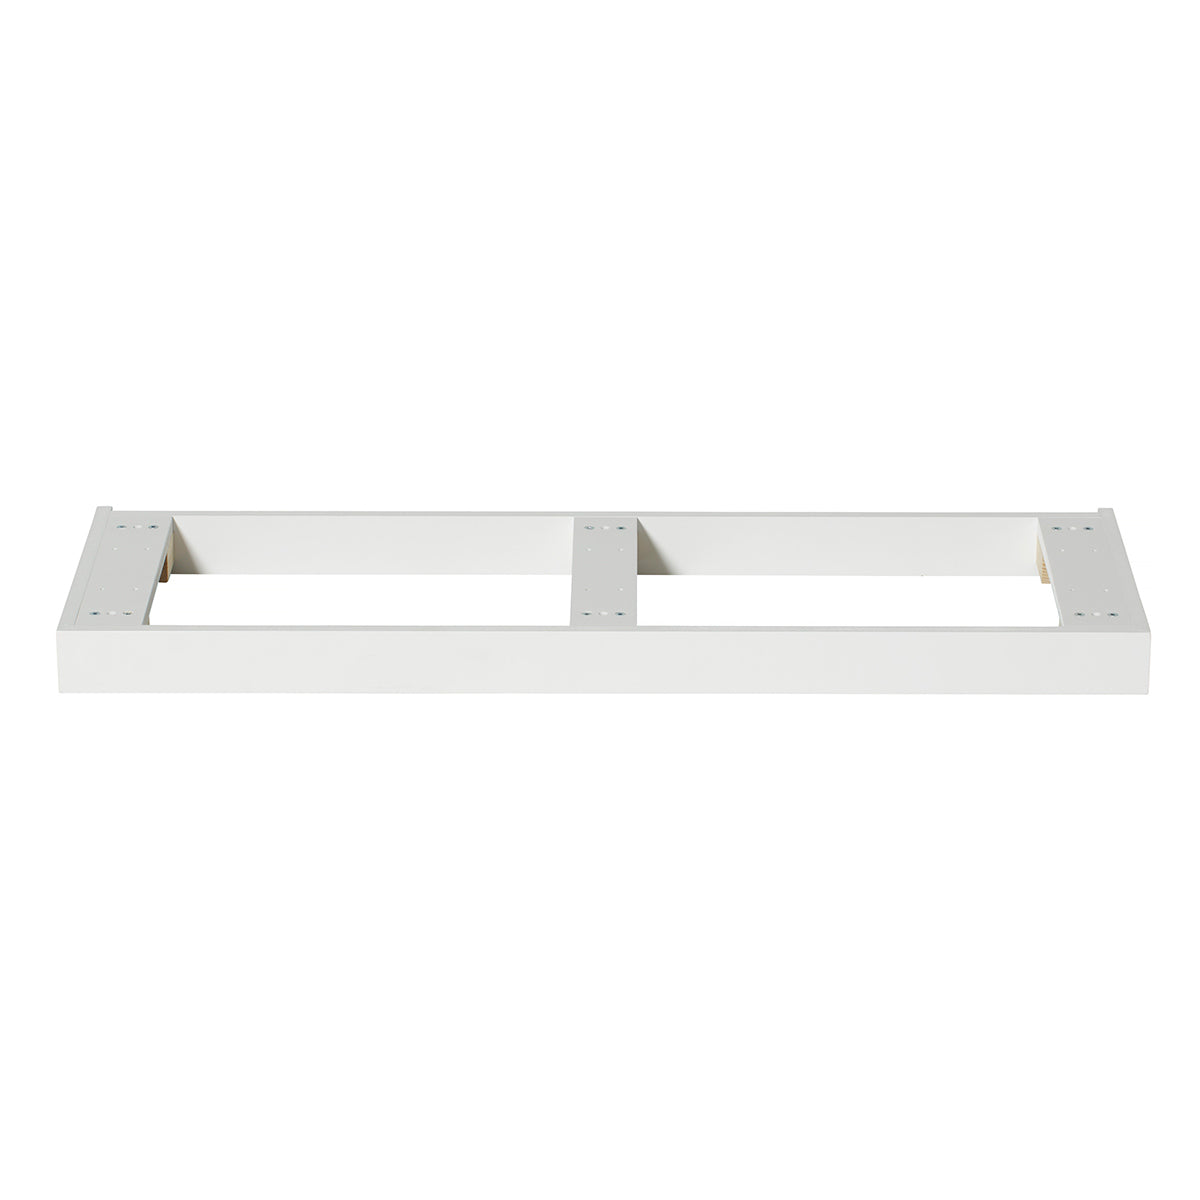 Oliver Furniture Wood Regal 3 x 1 horizontal